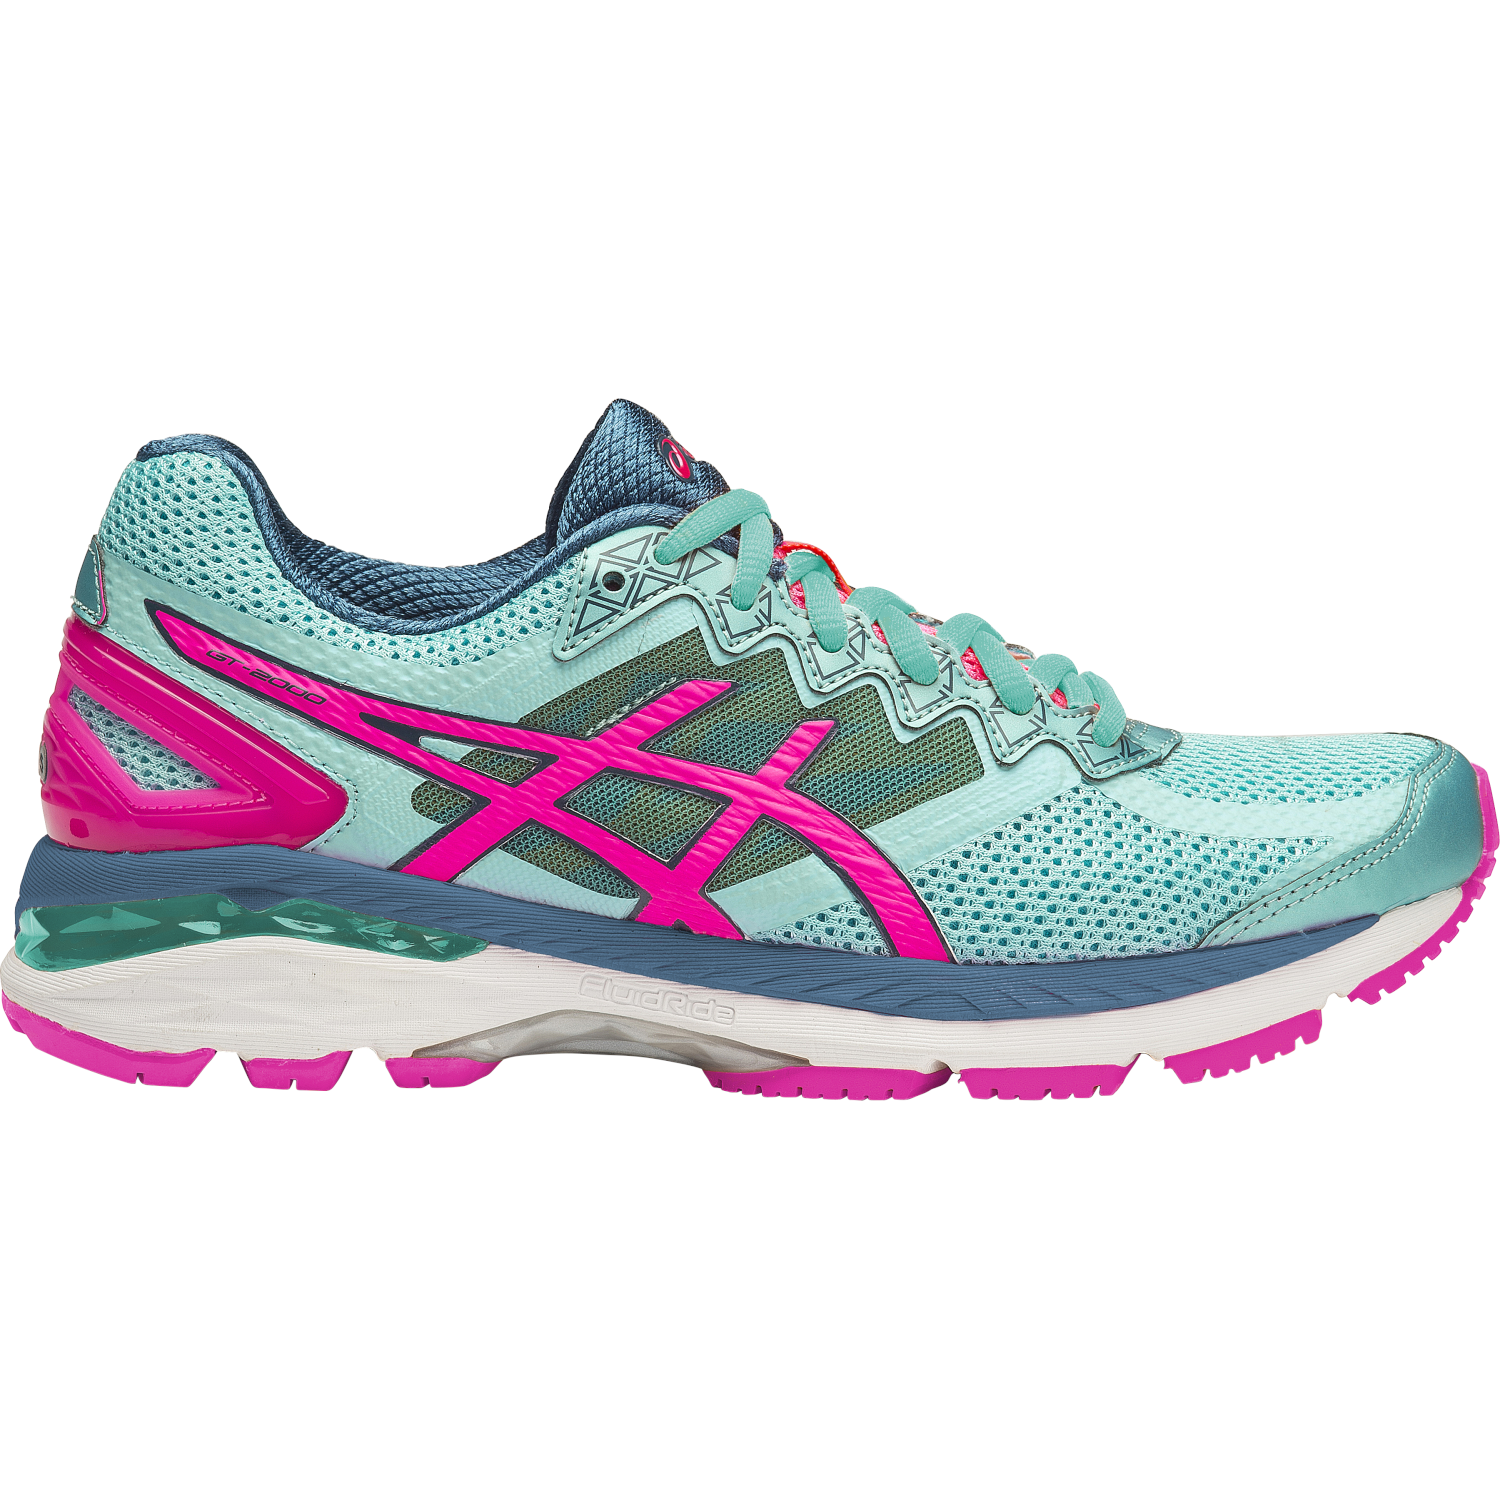 asics gt 2000 4 2a 2e womens running shoes turquoise hot pink navy online sportitude. Black Bedroom Furniture Sets. Home Design Ideas